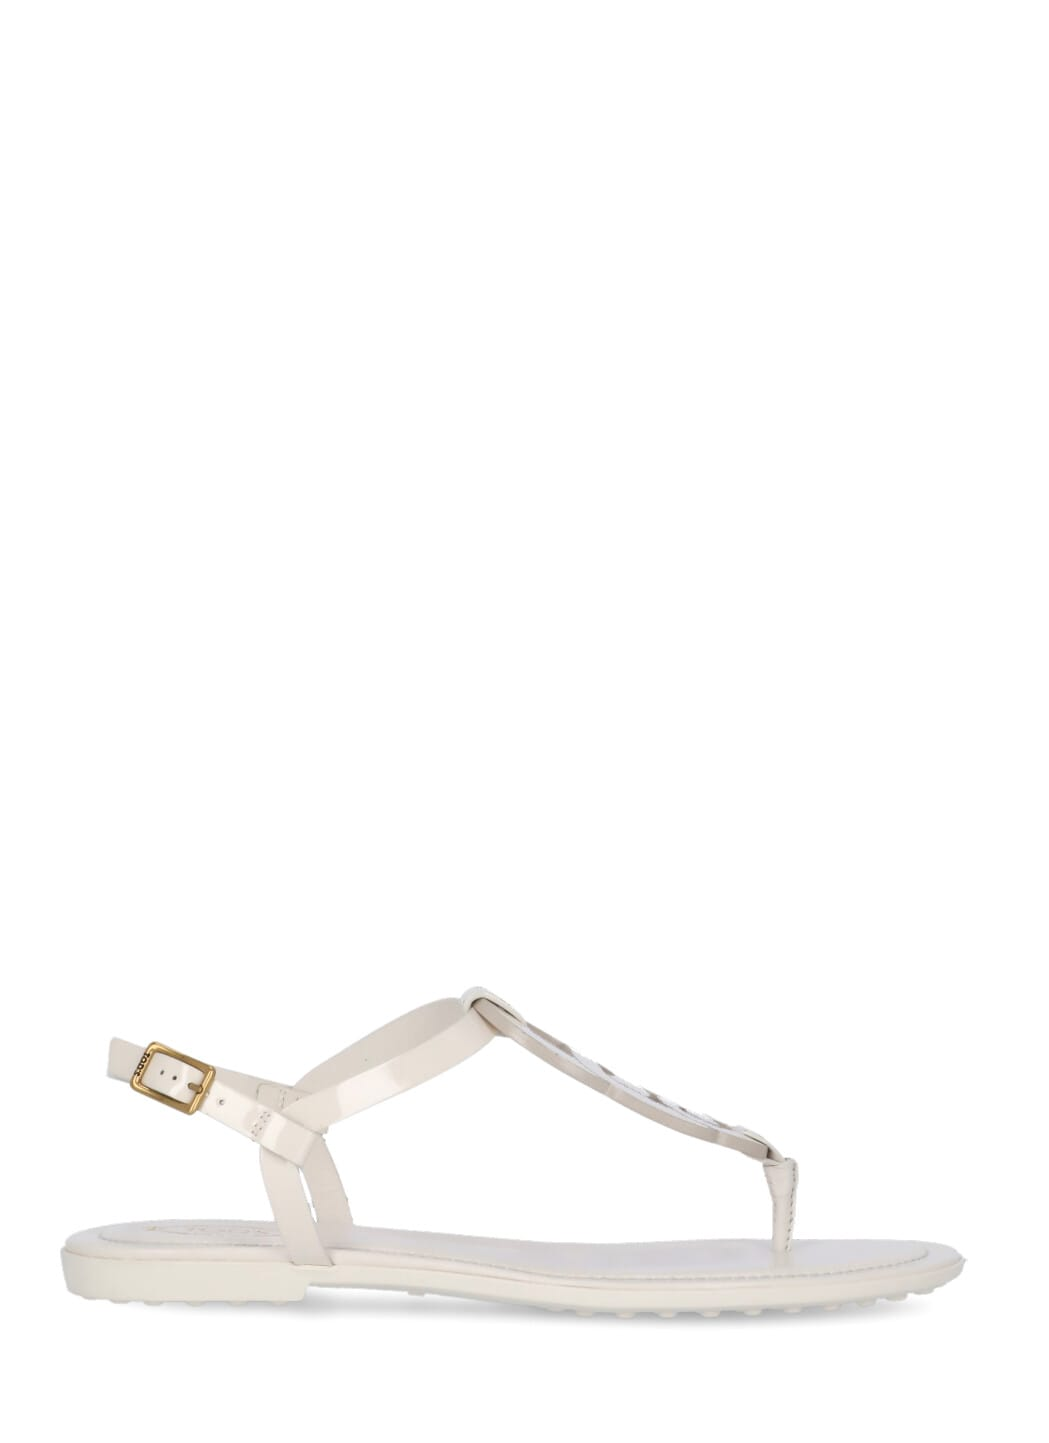 Tods Leather Sandal